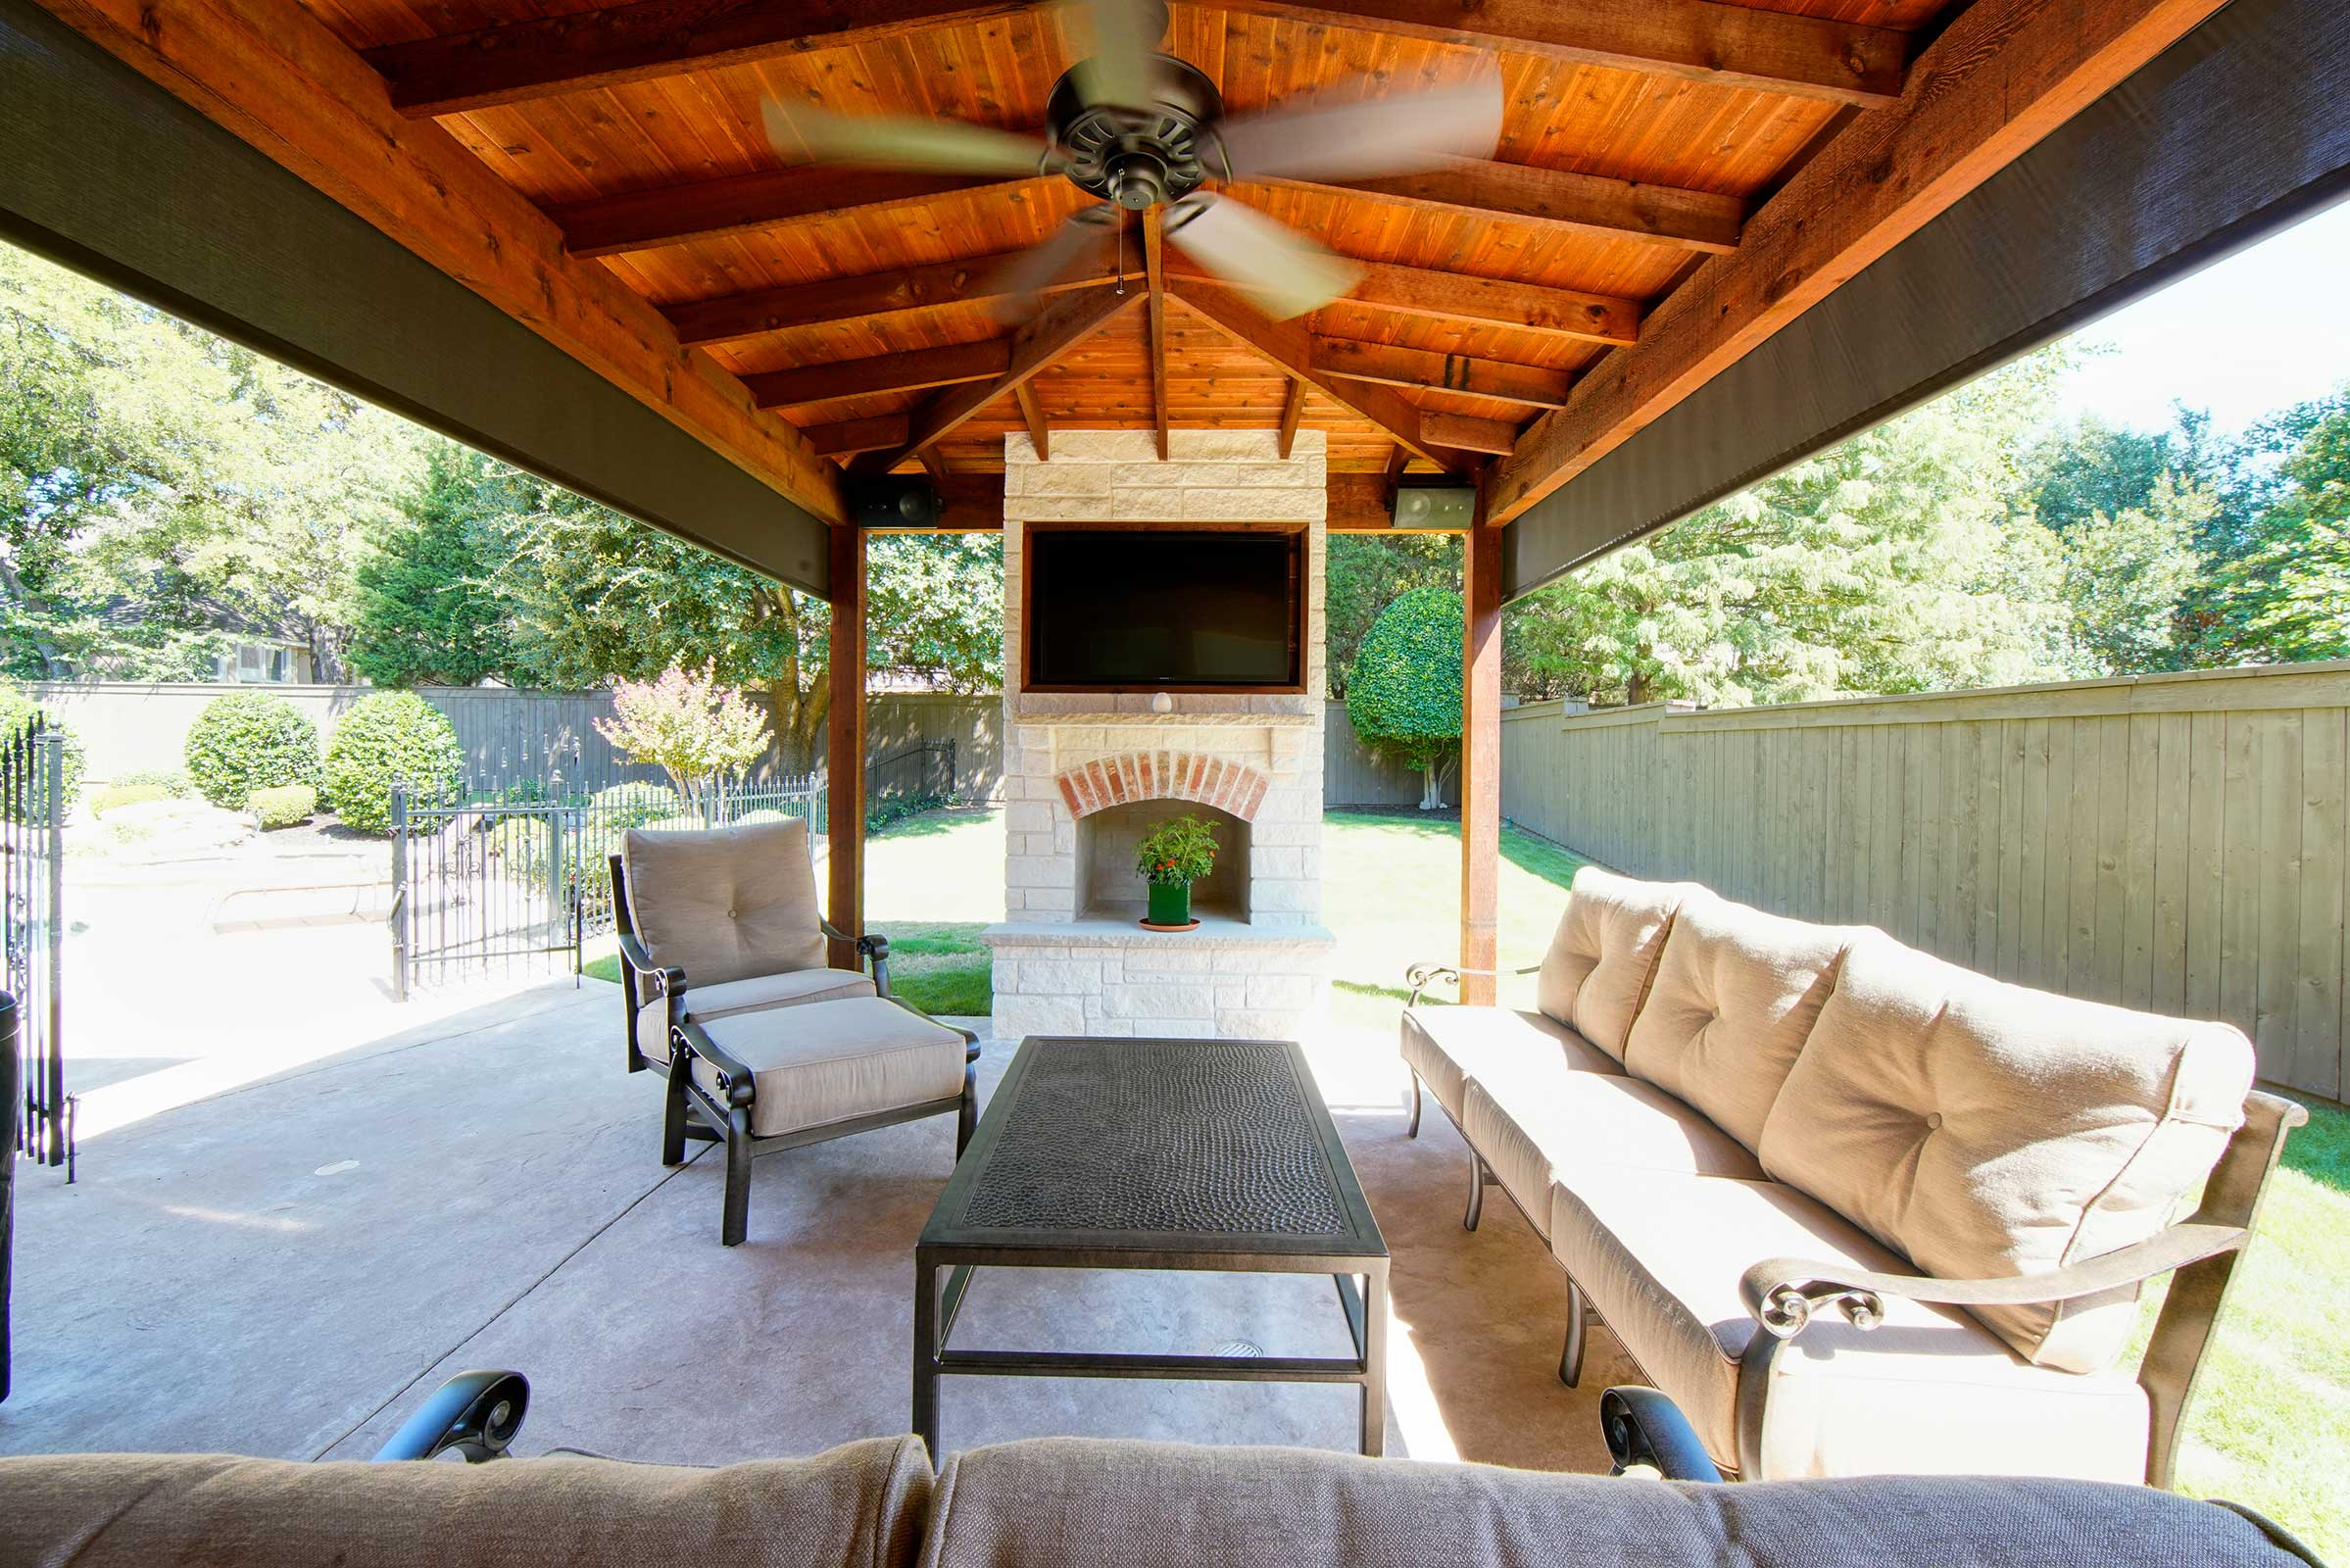 Outdoor Kitchens, Patio Covers | Fort Worth, Burleson TX ... on Covered Outdoor Kitchen With Fireplace id=54864